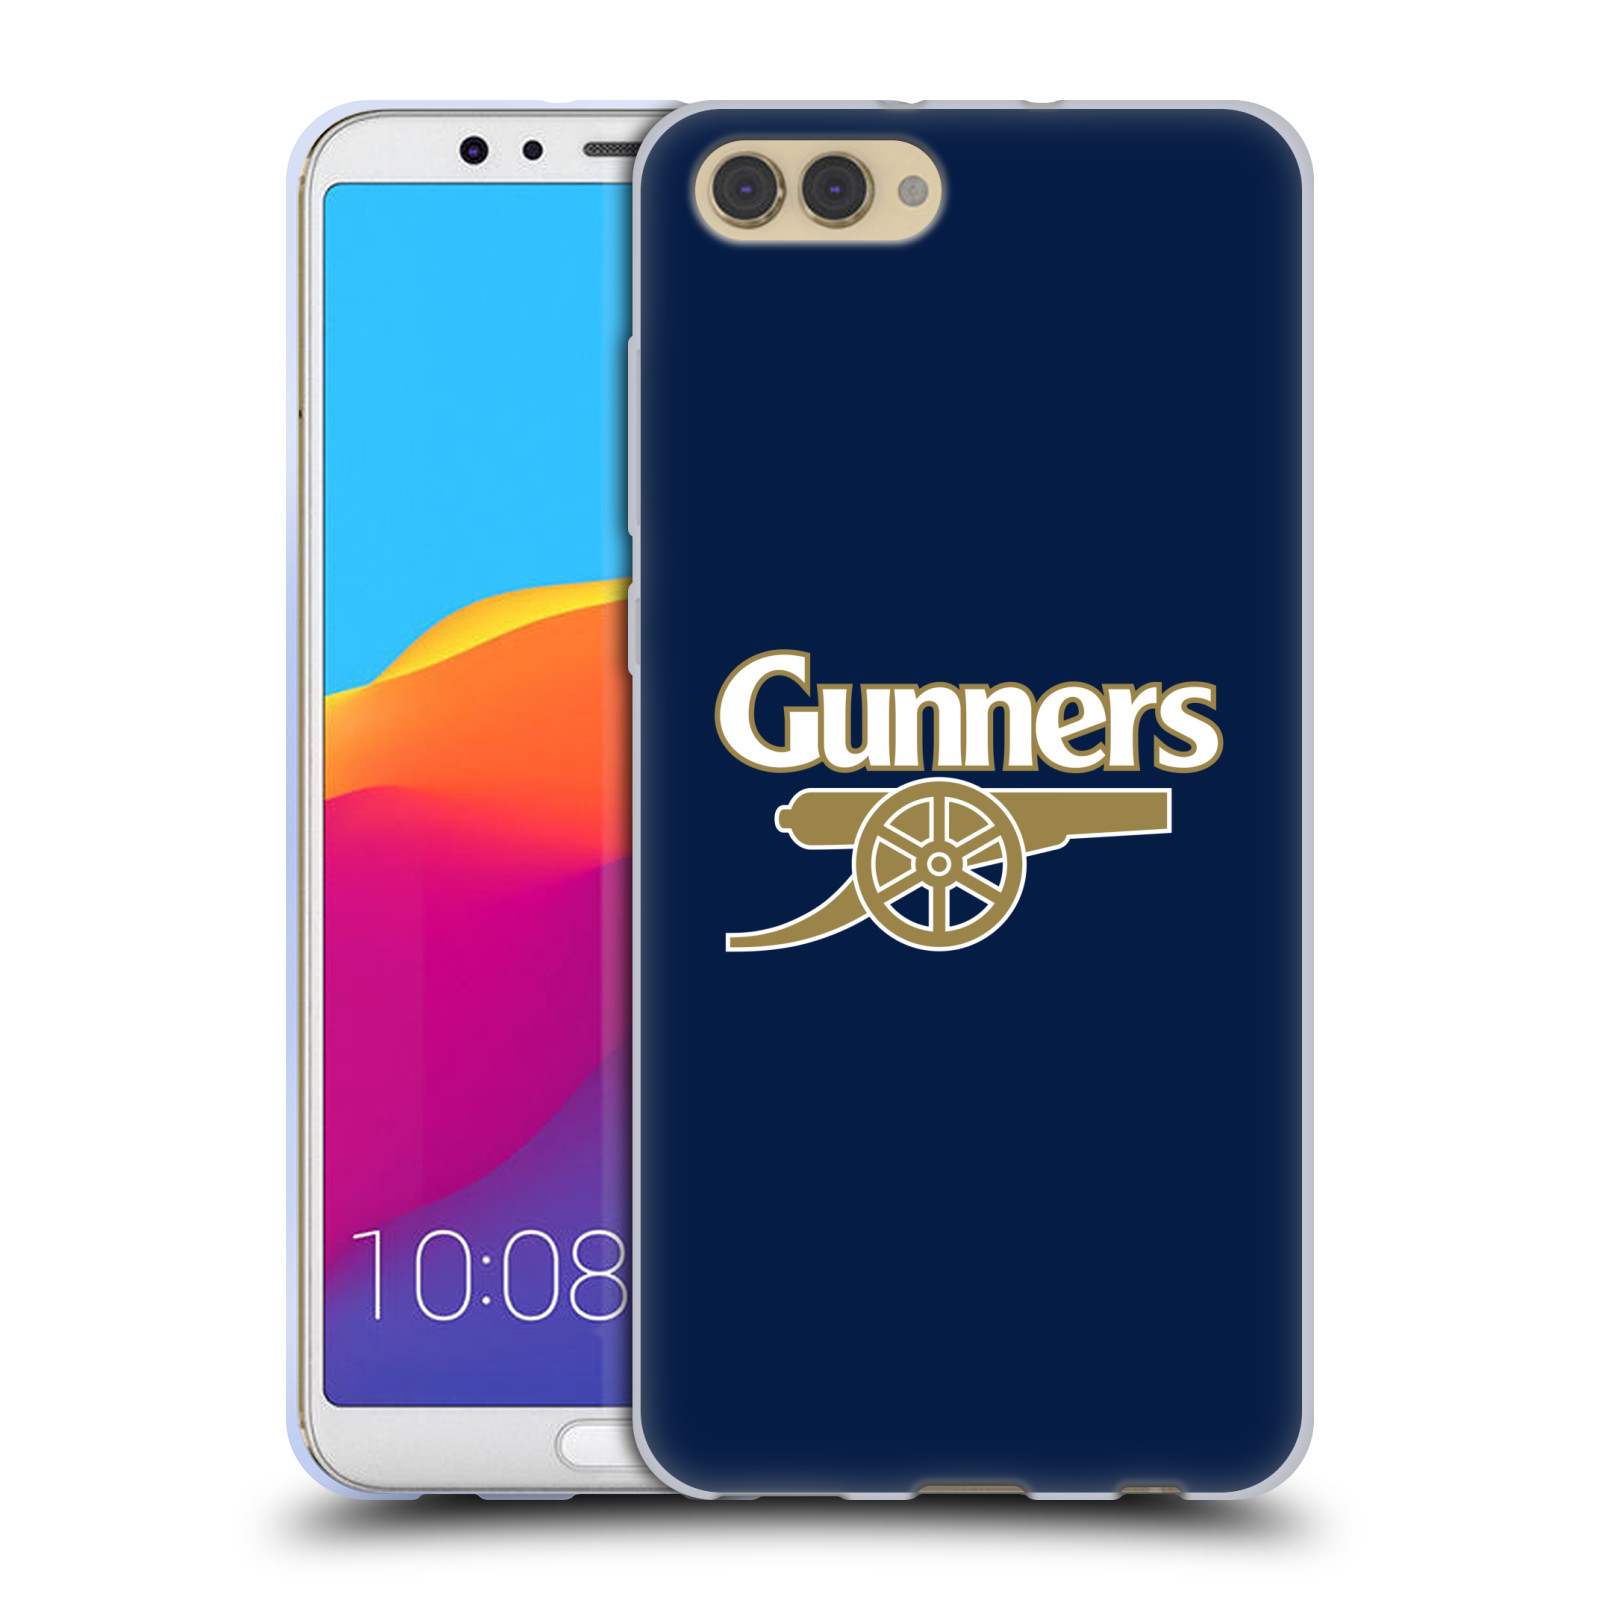 Silikonové pouzdro na mobil Honor View 10 - Head Case - Arsenal FC - Gunners